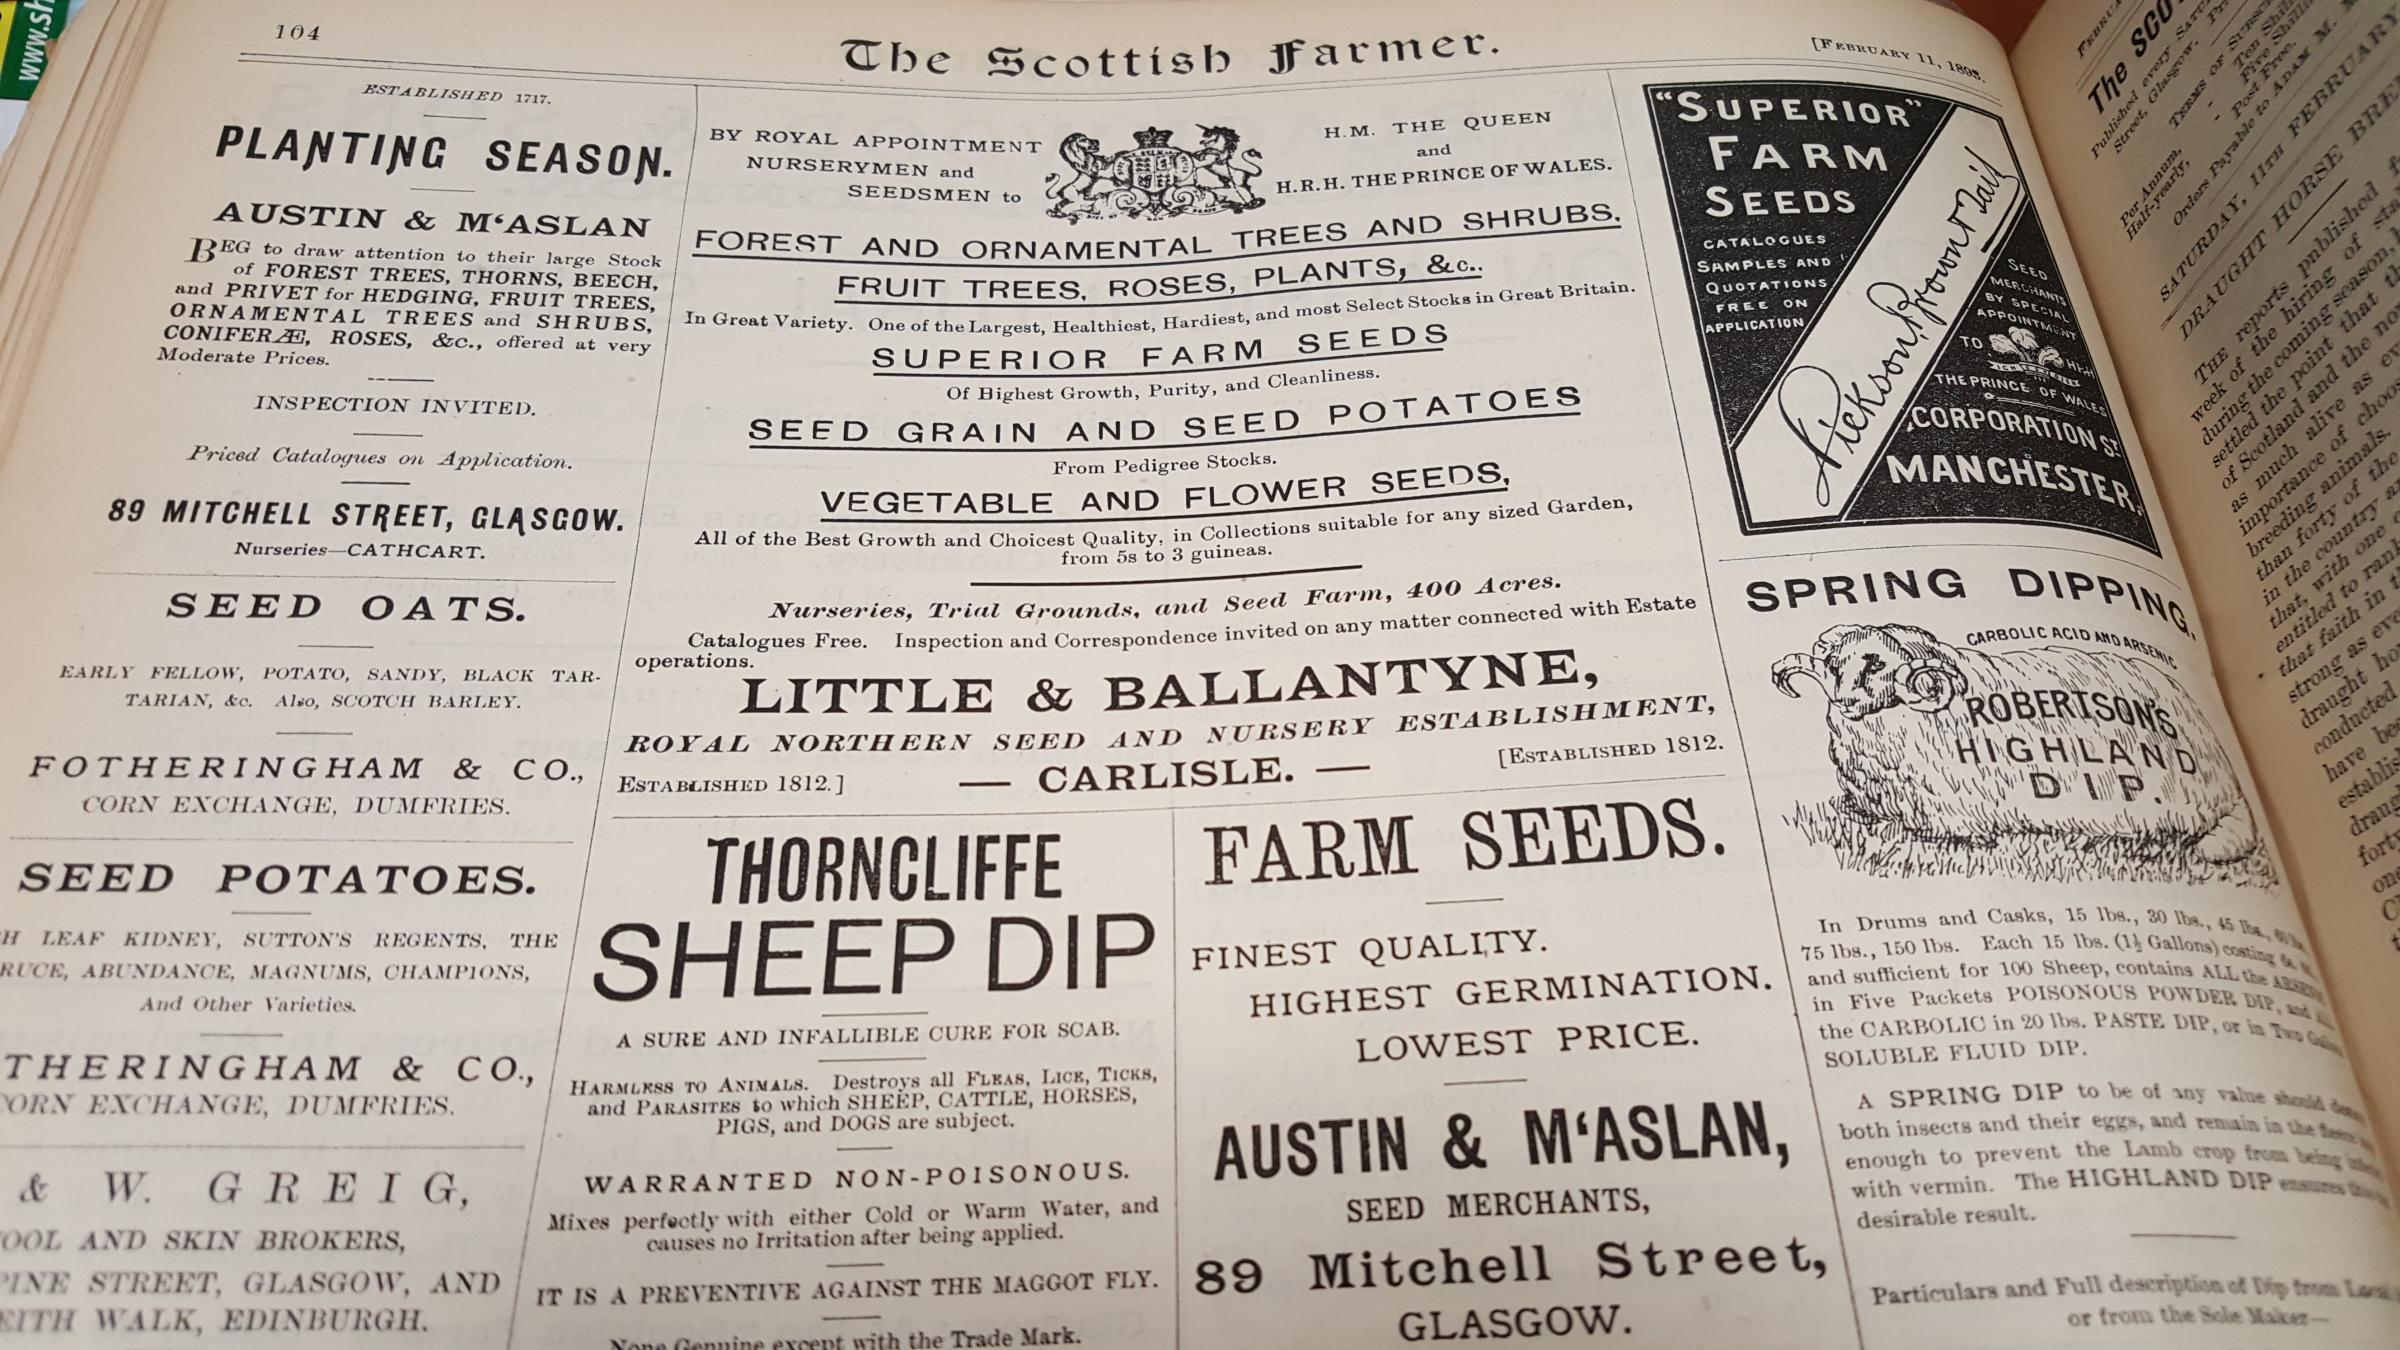 The 11 February 1893 edition of the Scottish Farmer